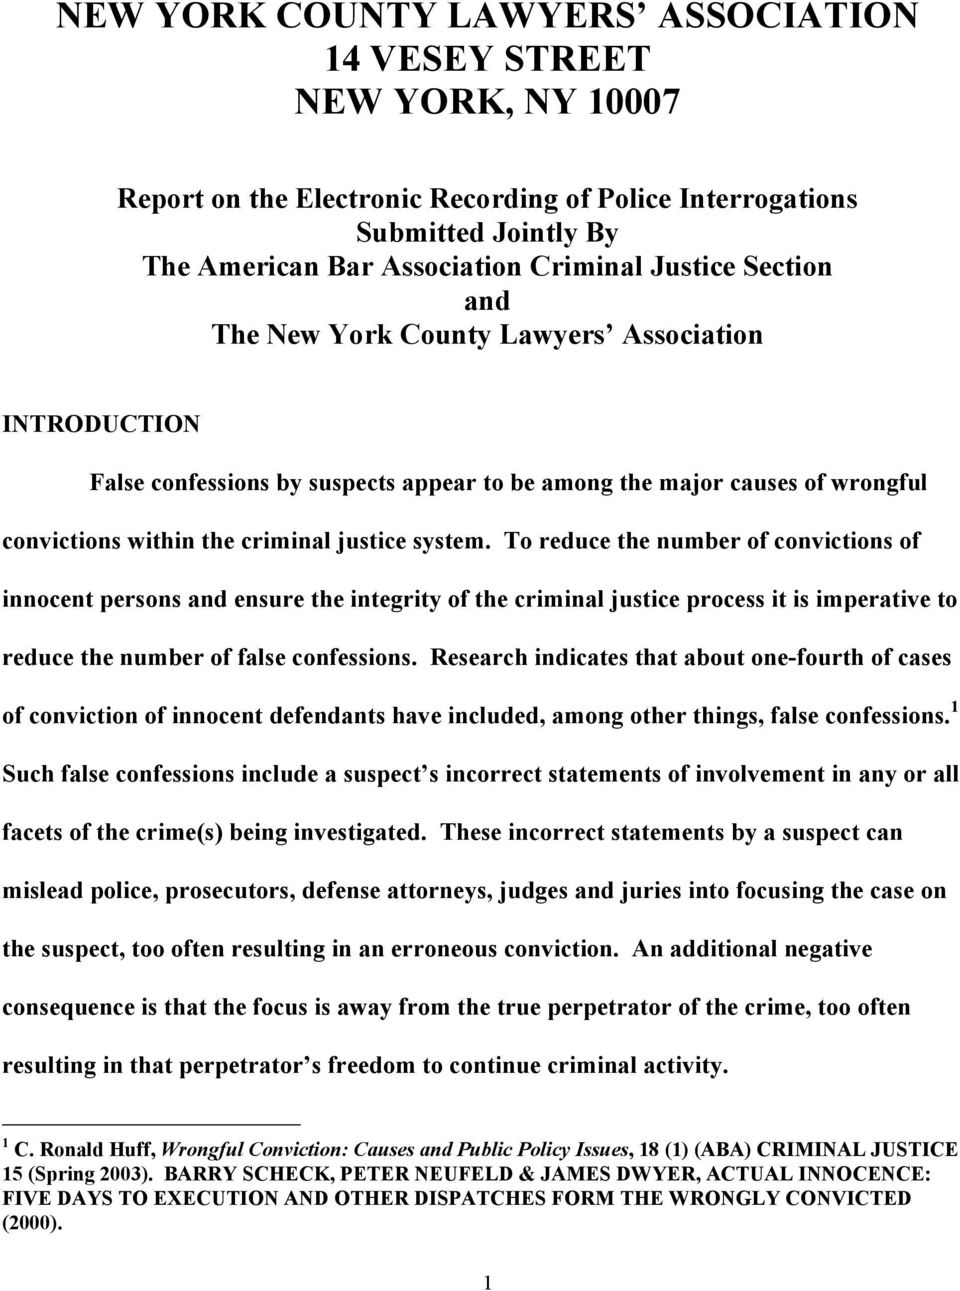 To reduce the number of convictions of innocent persons and ensure the integrity of the criminal justice process it is imperative to reduce the number of false confessions.